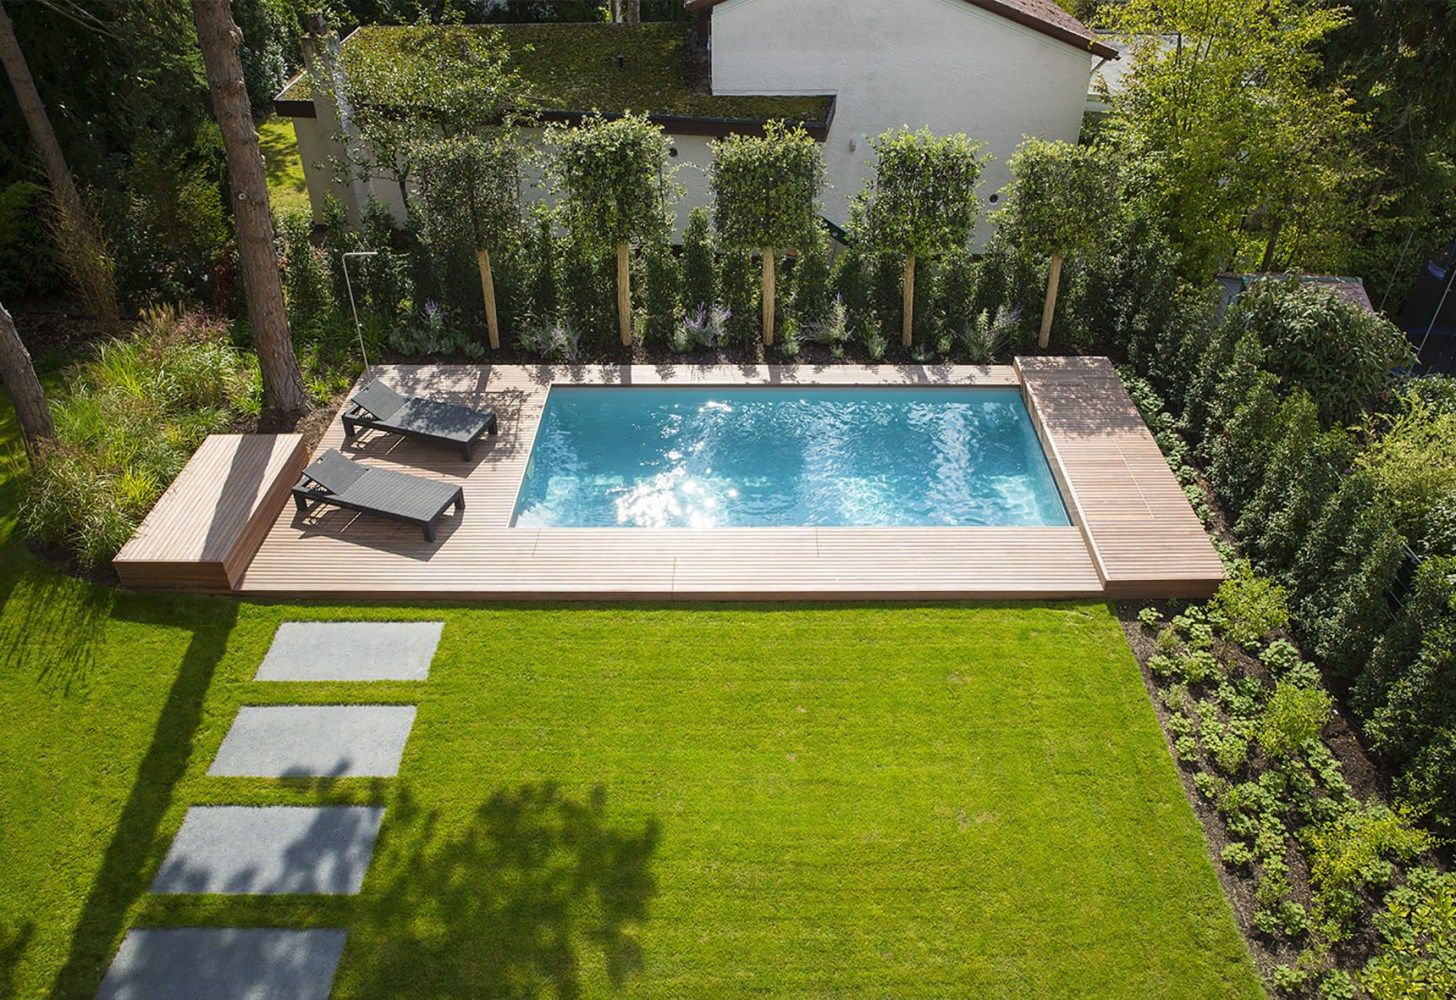 pool in kleinem garten garten pinterest garten pool f r kleinen garten und garten ideen. Black Bedroom Furniture Sets. Home Design Ideas